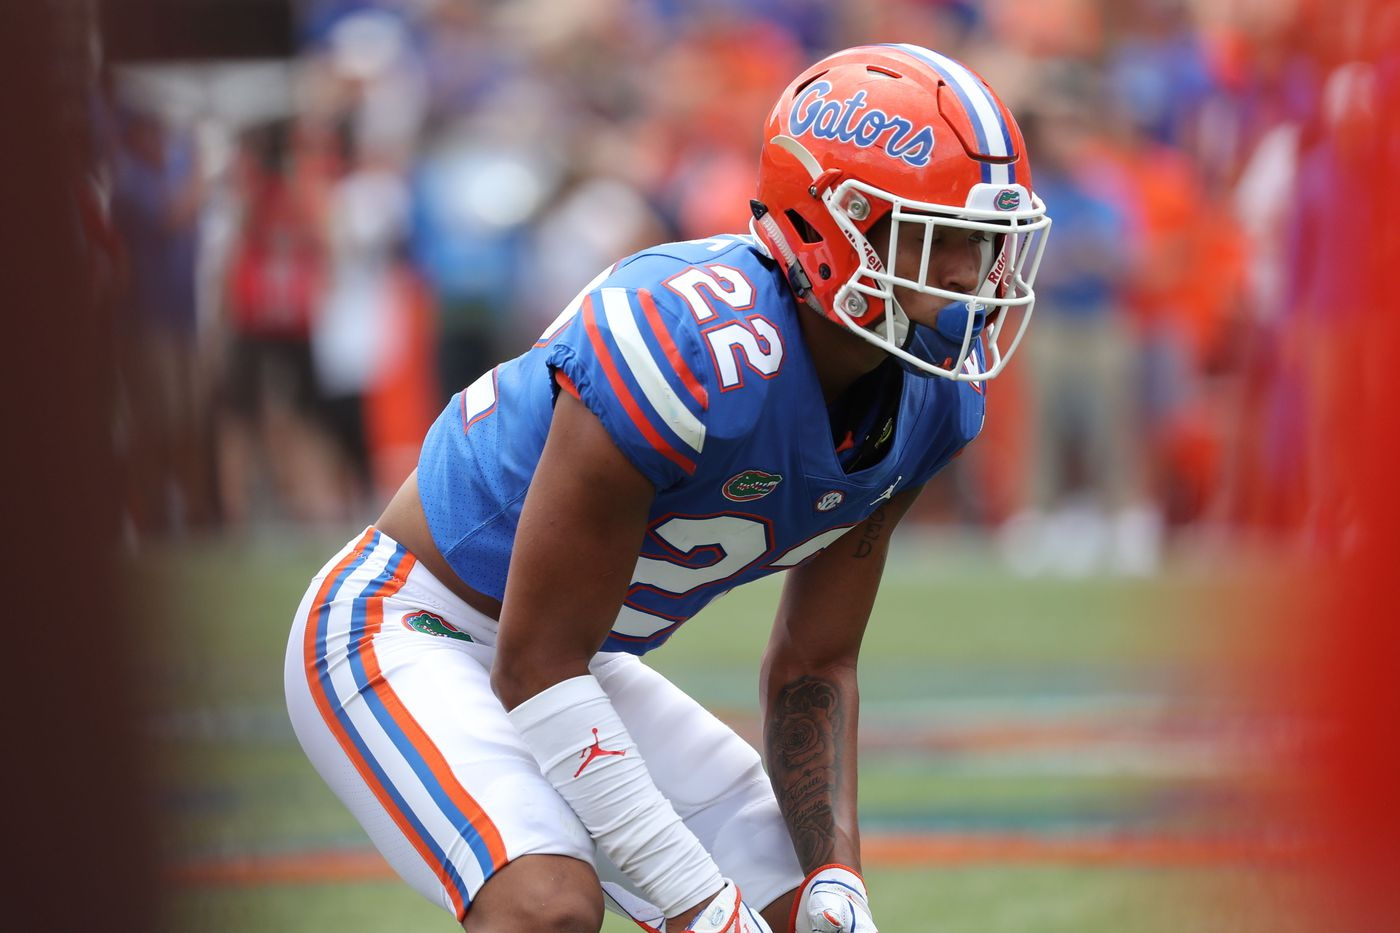 ffbb77beb875 Reports  Florida freshman CB Chris Steele enters transfer portal -  Alligator Army